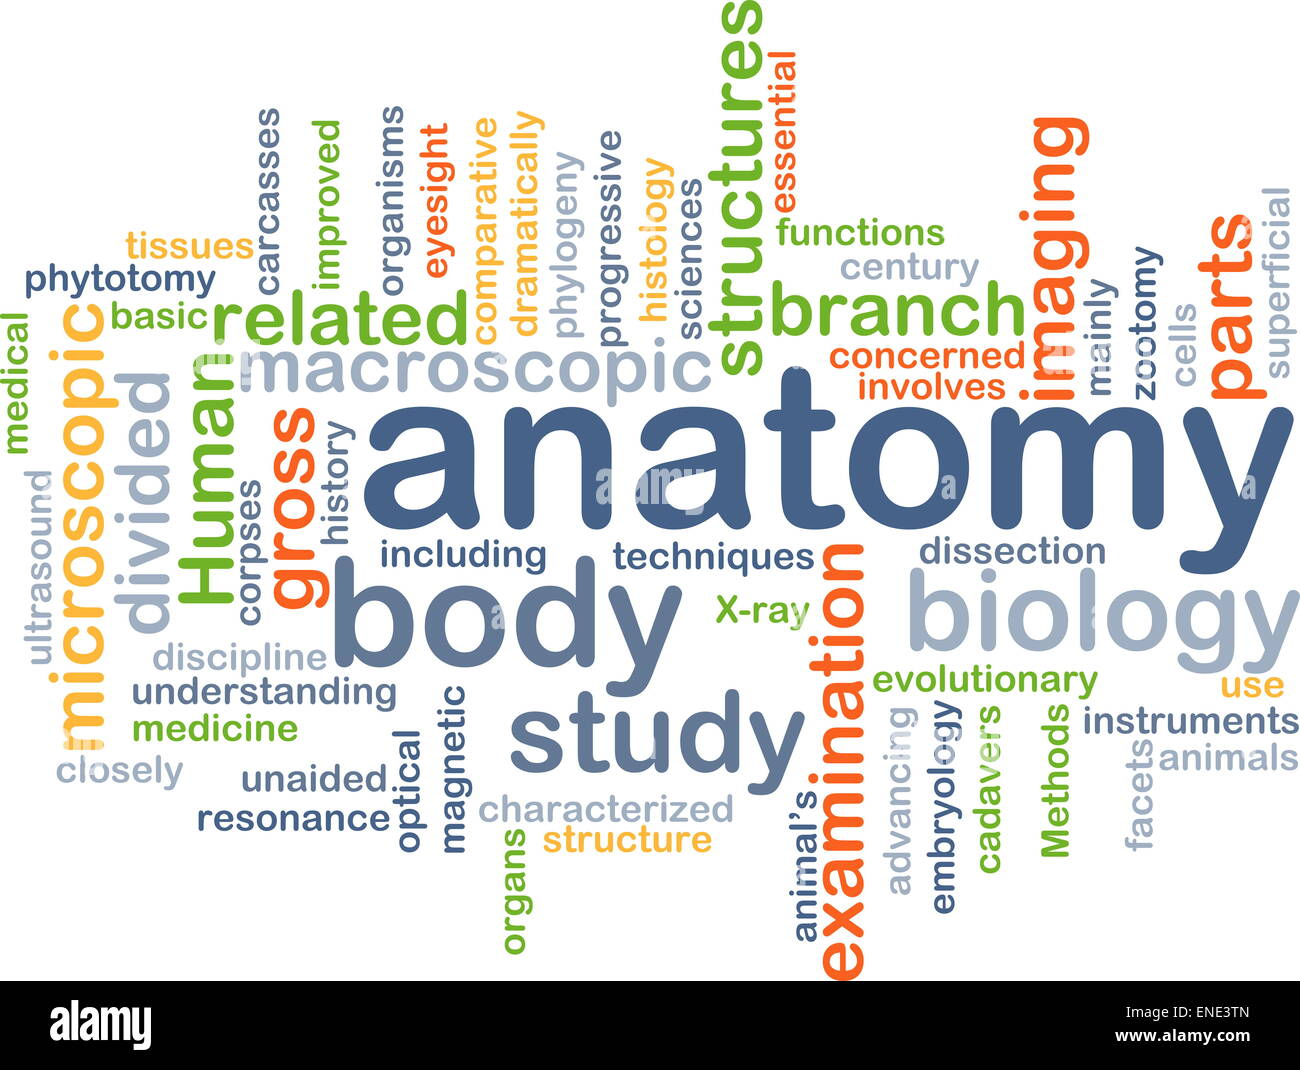 Anatomy Word Cloud Concept Stock Photos & Anatomy Word Cloud Concept ...